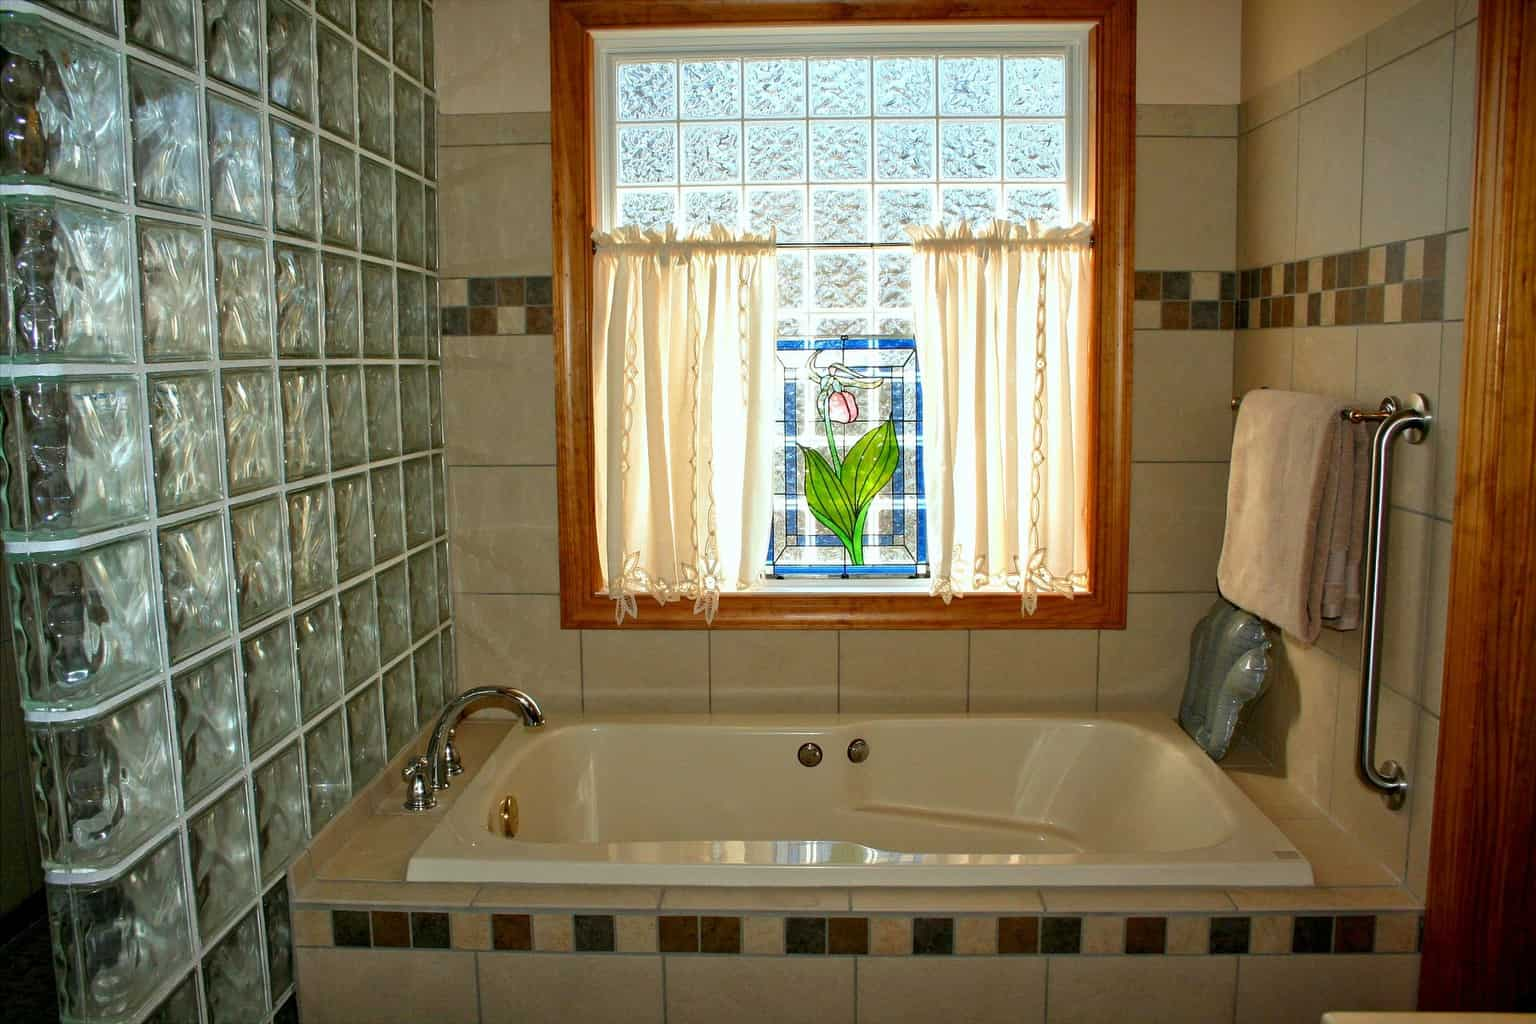 Stained glass windows on a bathroom